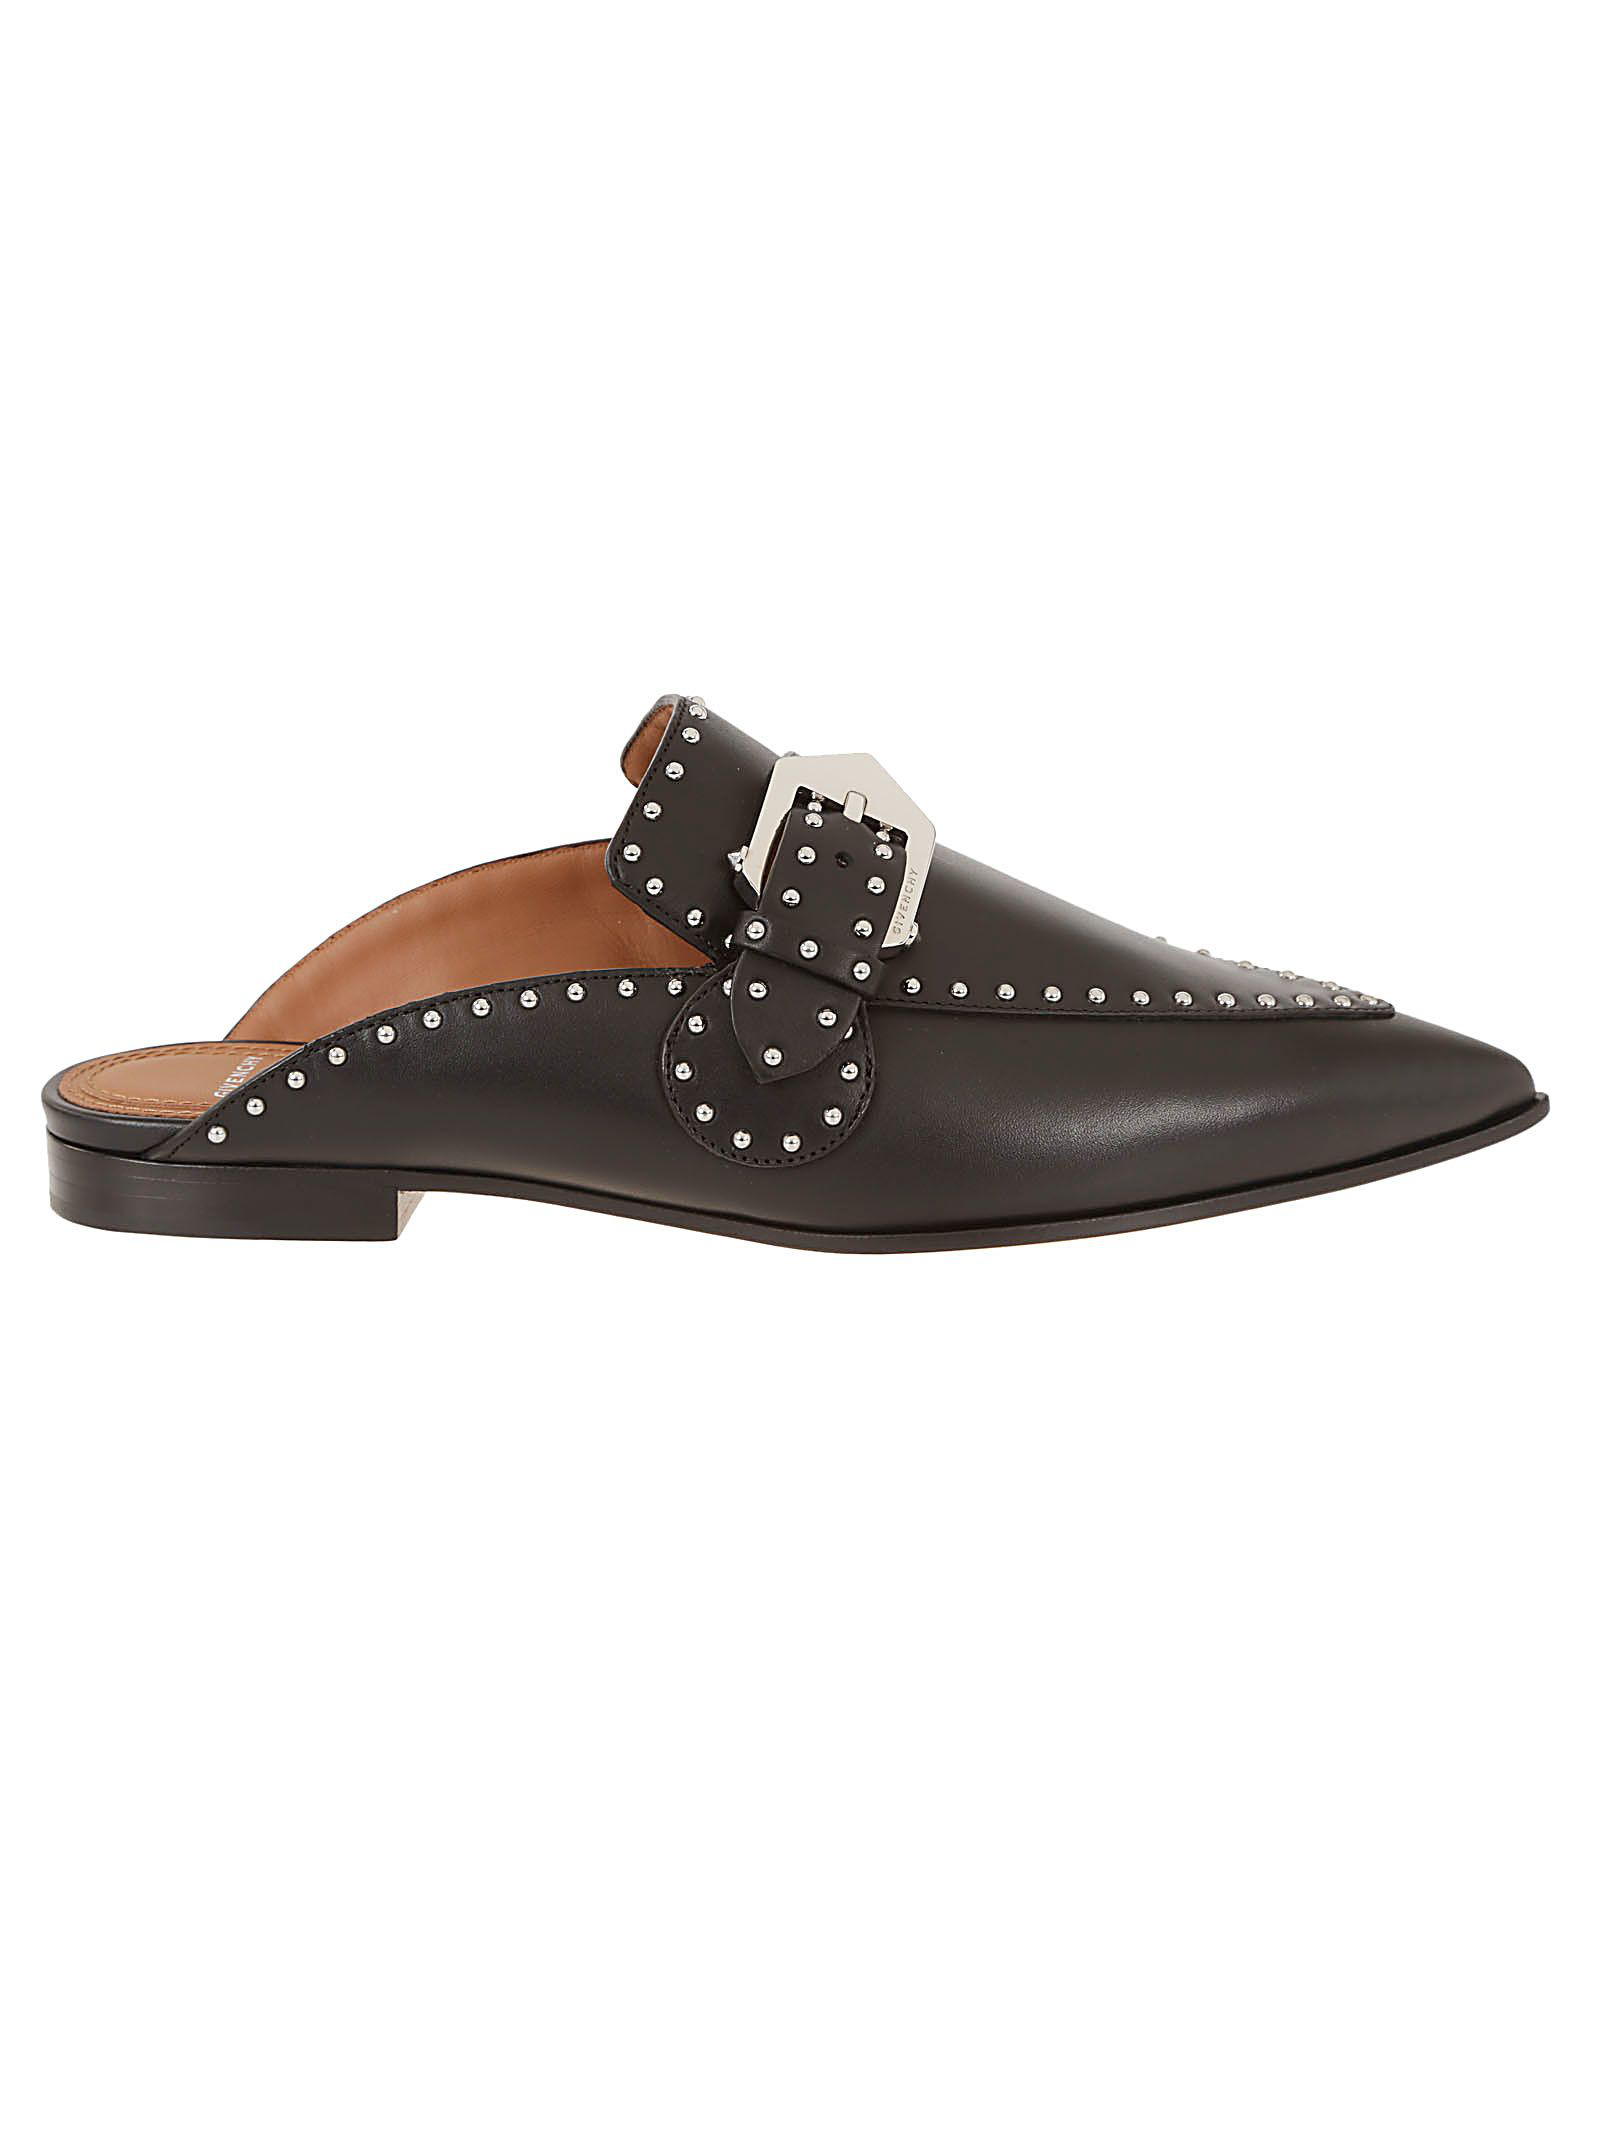 c66e84eeeee Givenchy Elegant Studded Leather Backless Loafers In Black